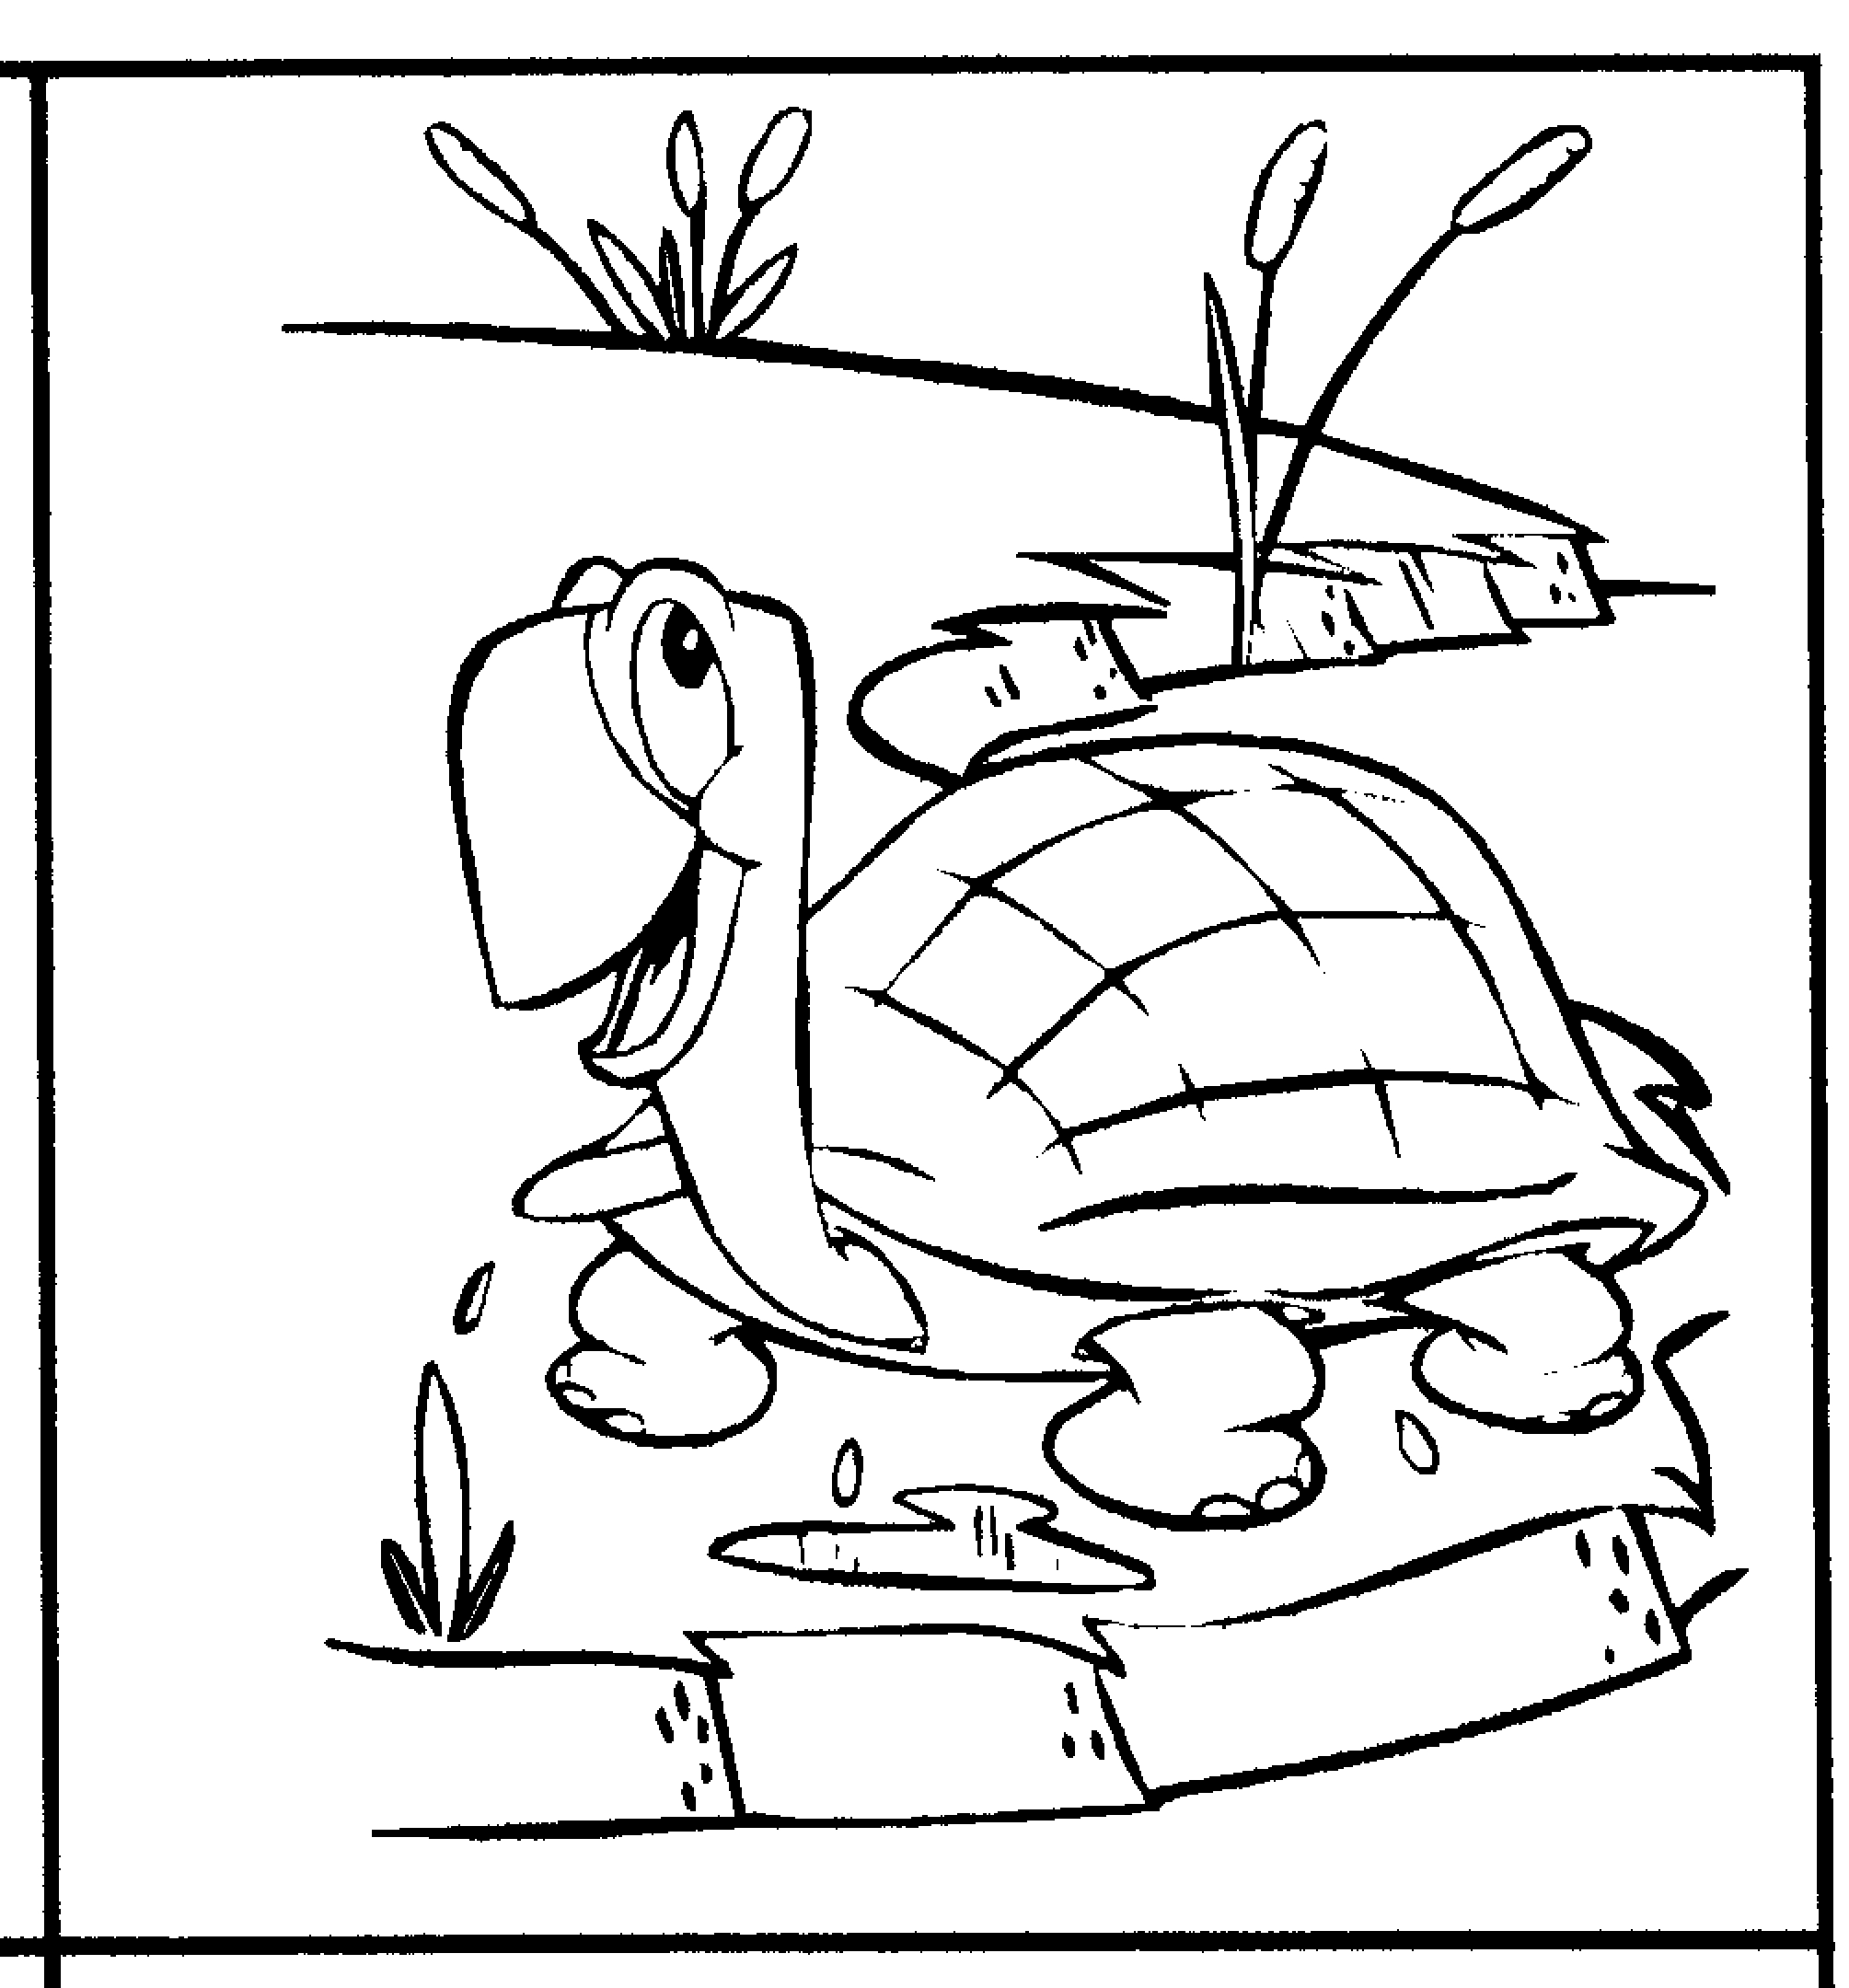 Magic school bus coloring pictures -  Holiday Coloring Pages Magic School Bus Coloring Pages Slow Turtle Icon Turtles Do Not Move